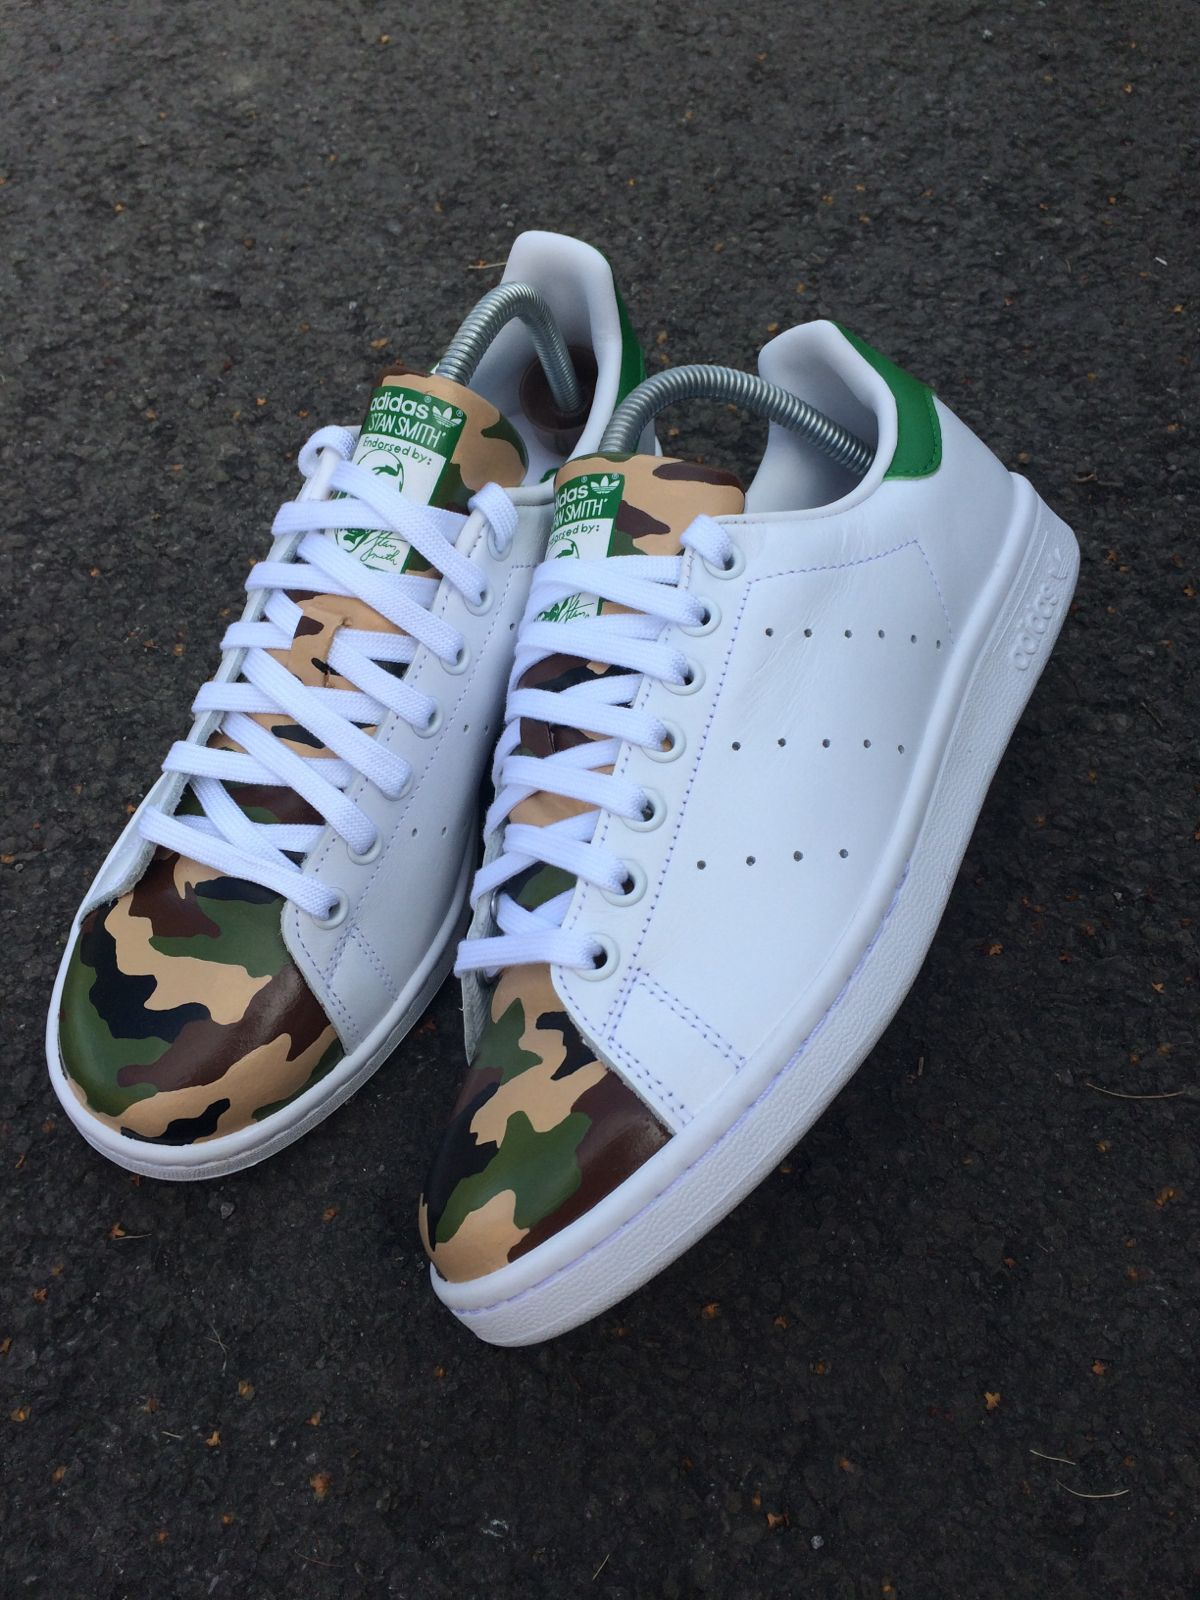 c5803bd4d9a7c Matt B Customs — Adidas Stan Smith - Army Camo